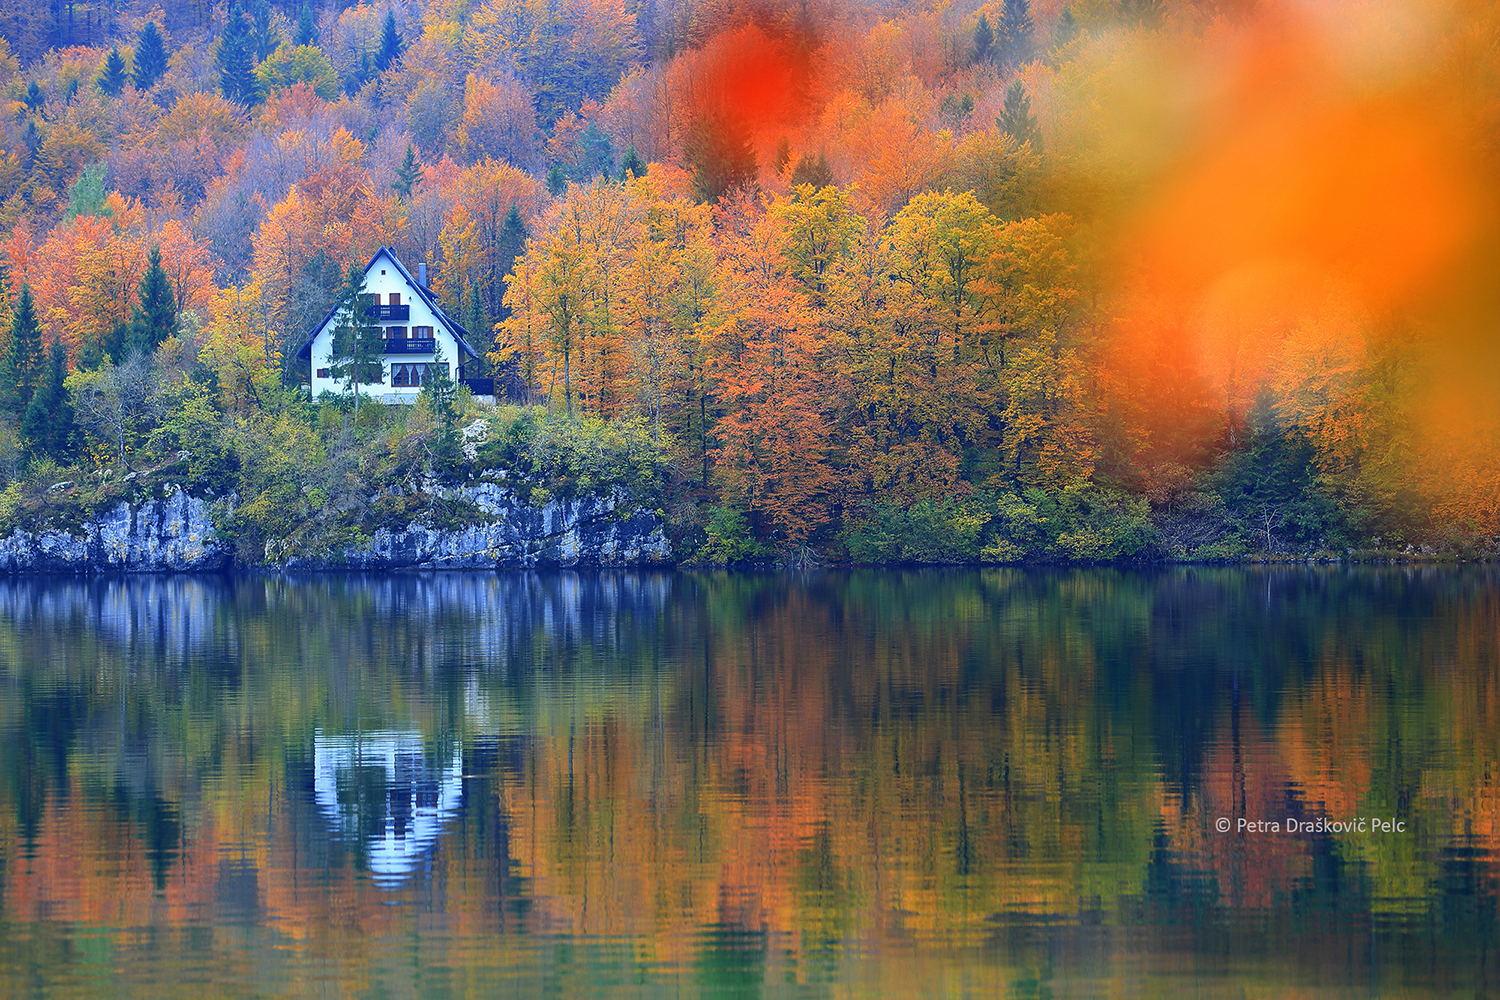 THE AUTUMN FACES OF BOHINJ